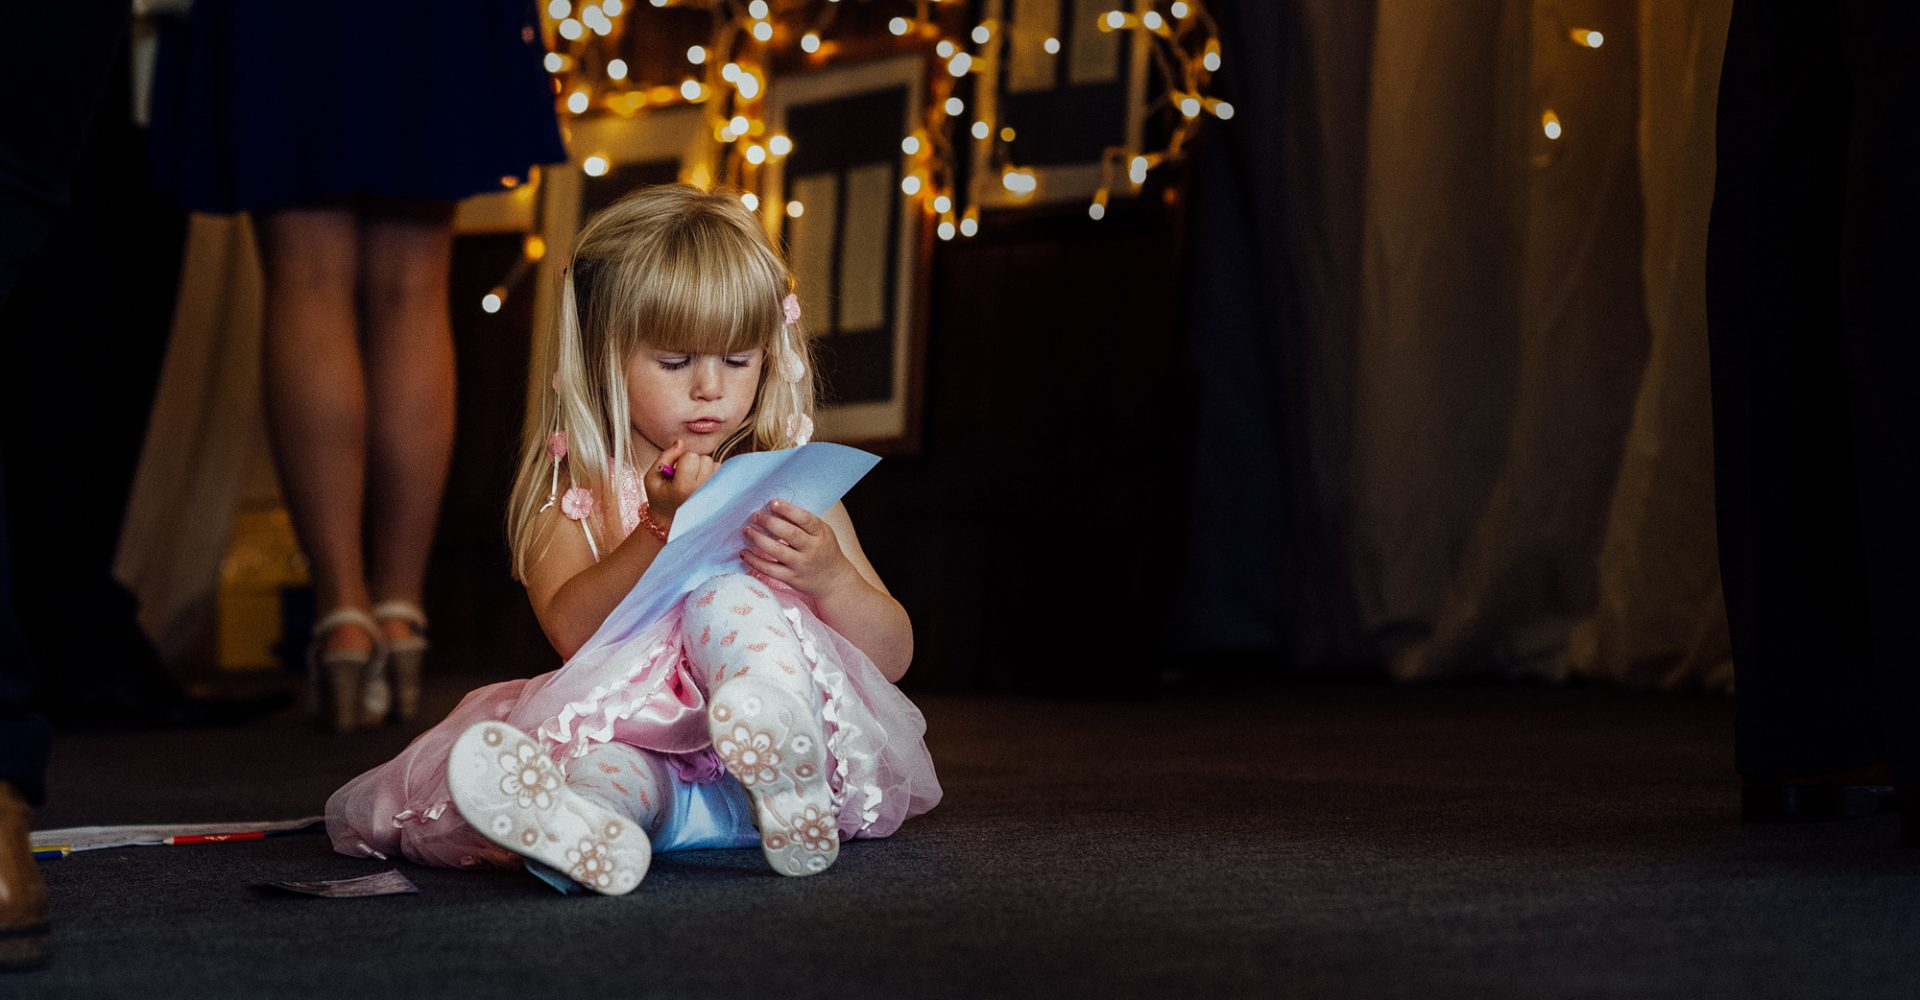 Little girl at wedding with fairy lights